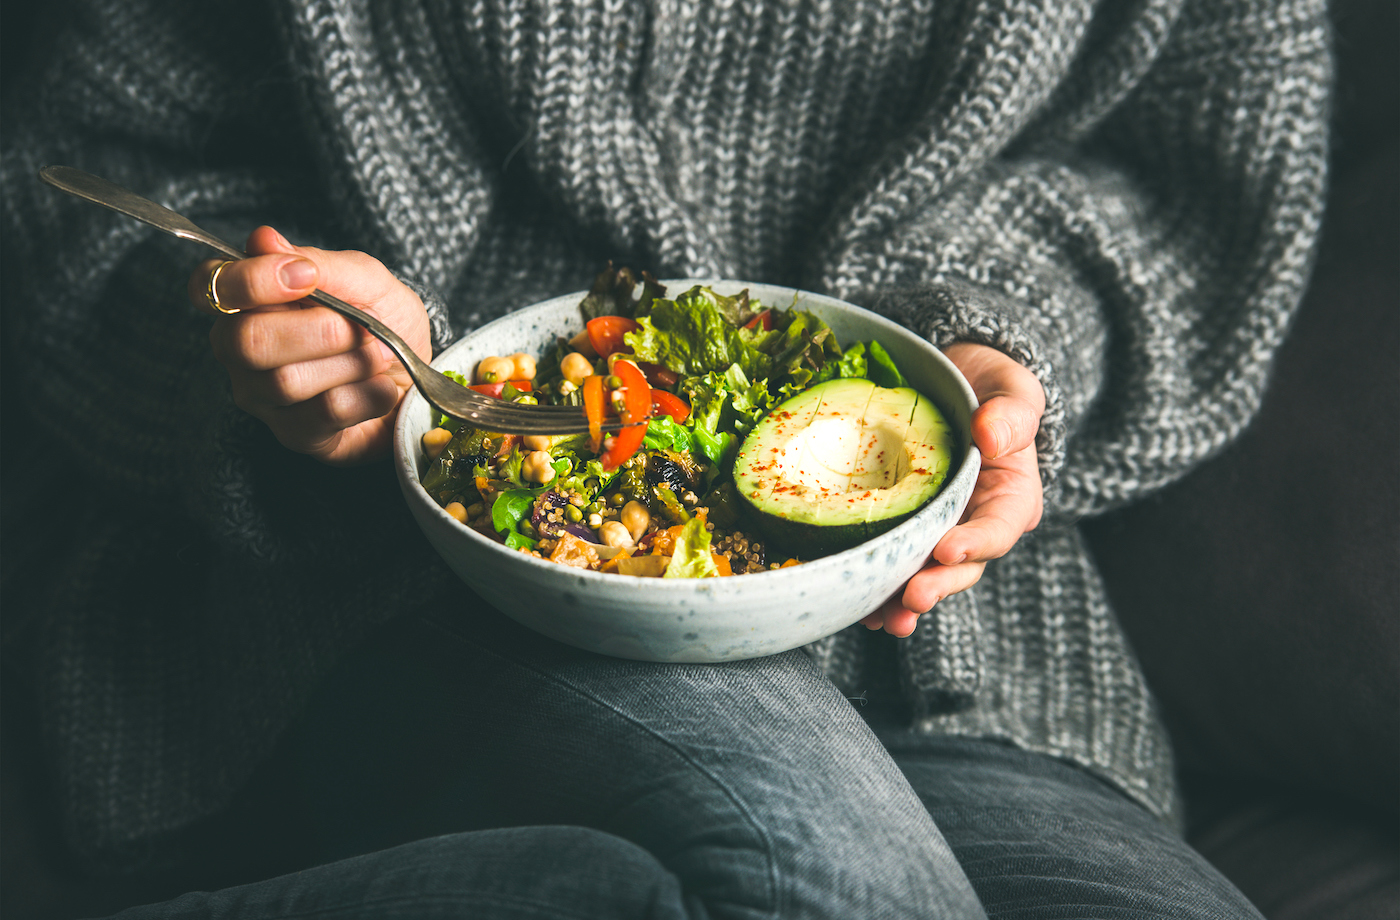 The 5 most common mistakes people make when they try to eat plant-based, according to a dietitian